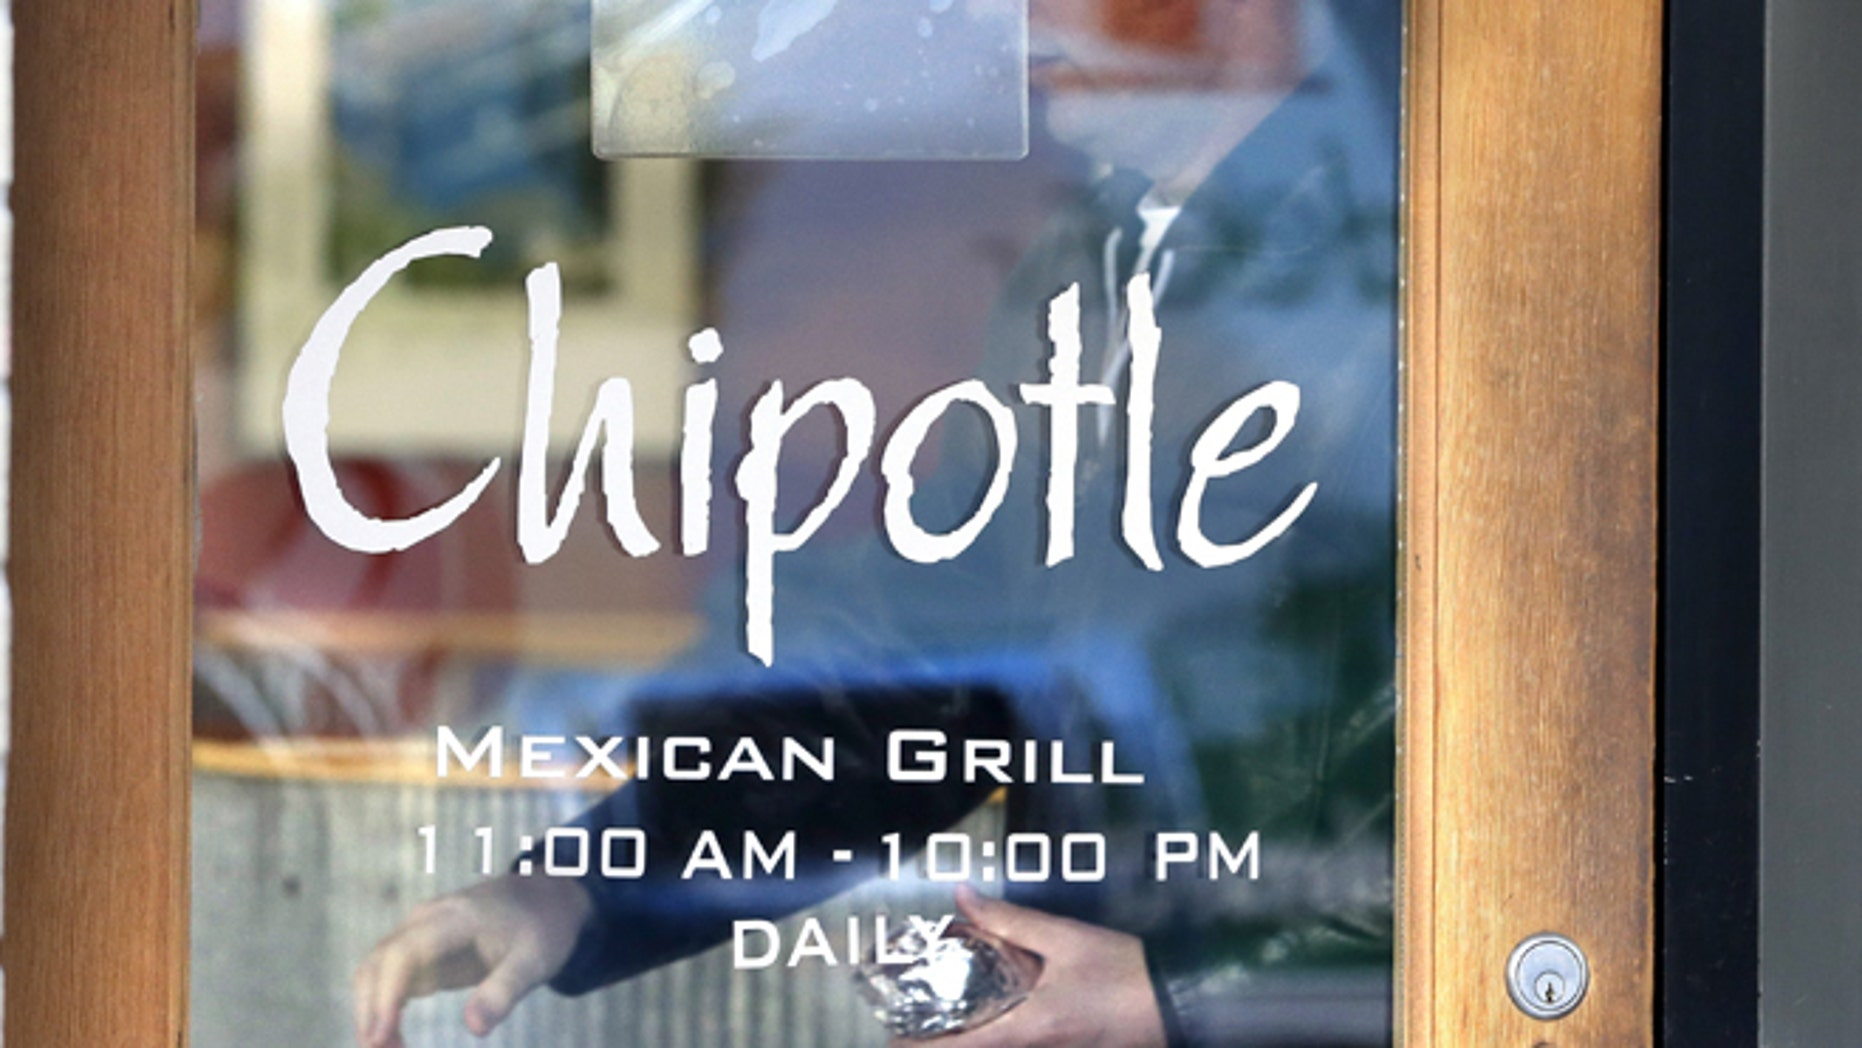 Paul Chipotle manager fired after reportedly asking customers to pay before ordering